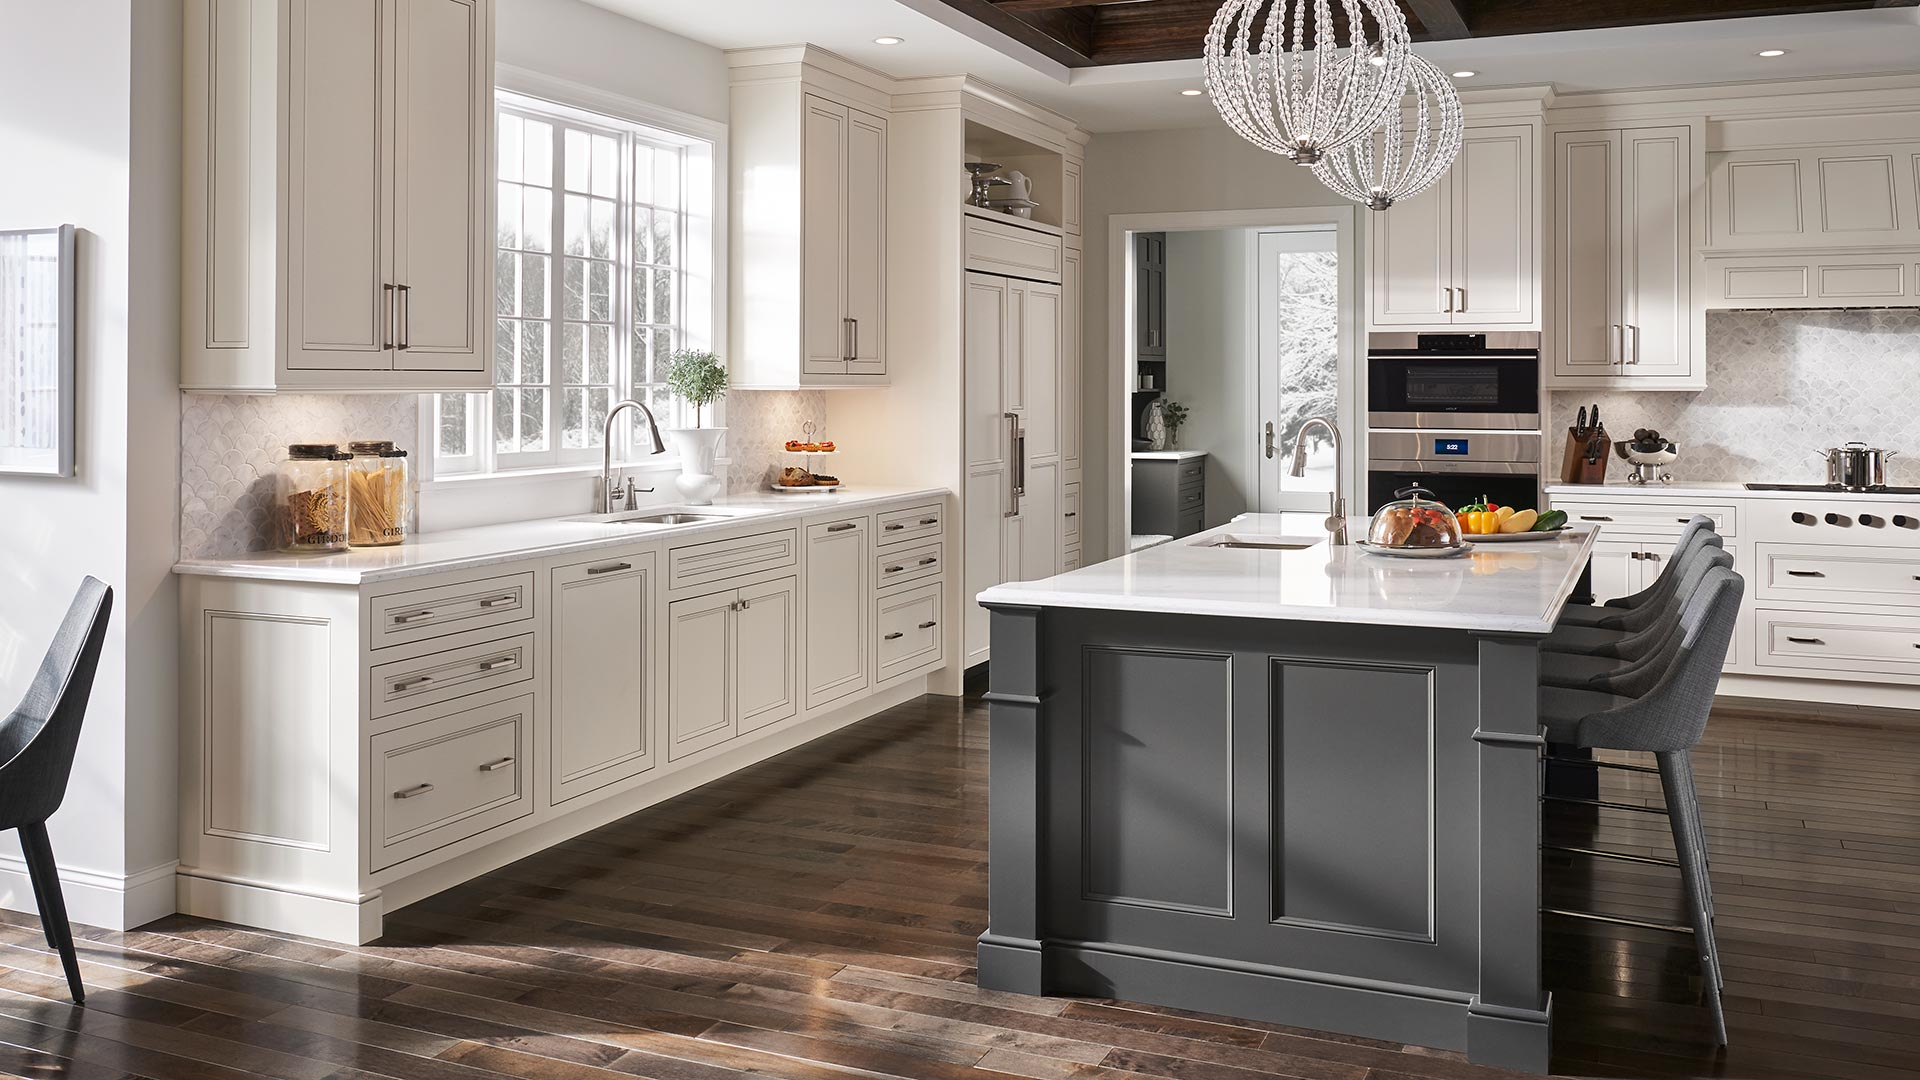 How To Plan Your Dream Kitchen The Easy Way Today S Homeowner